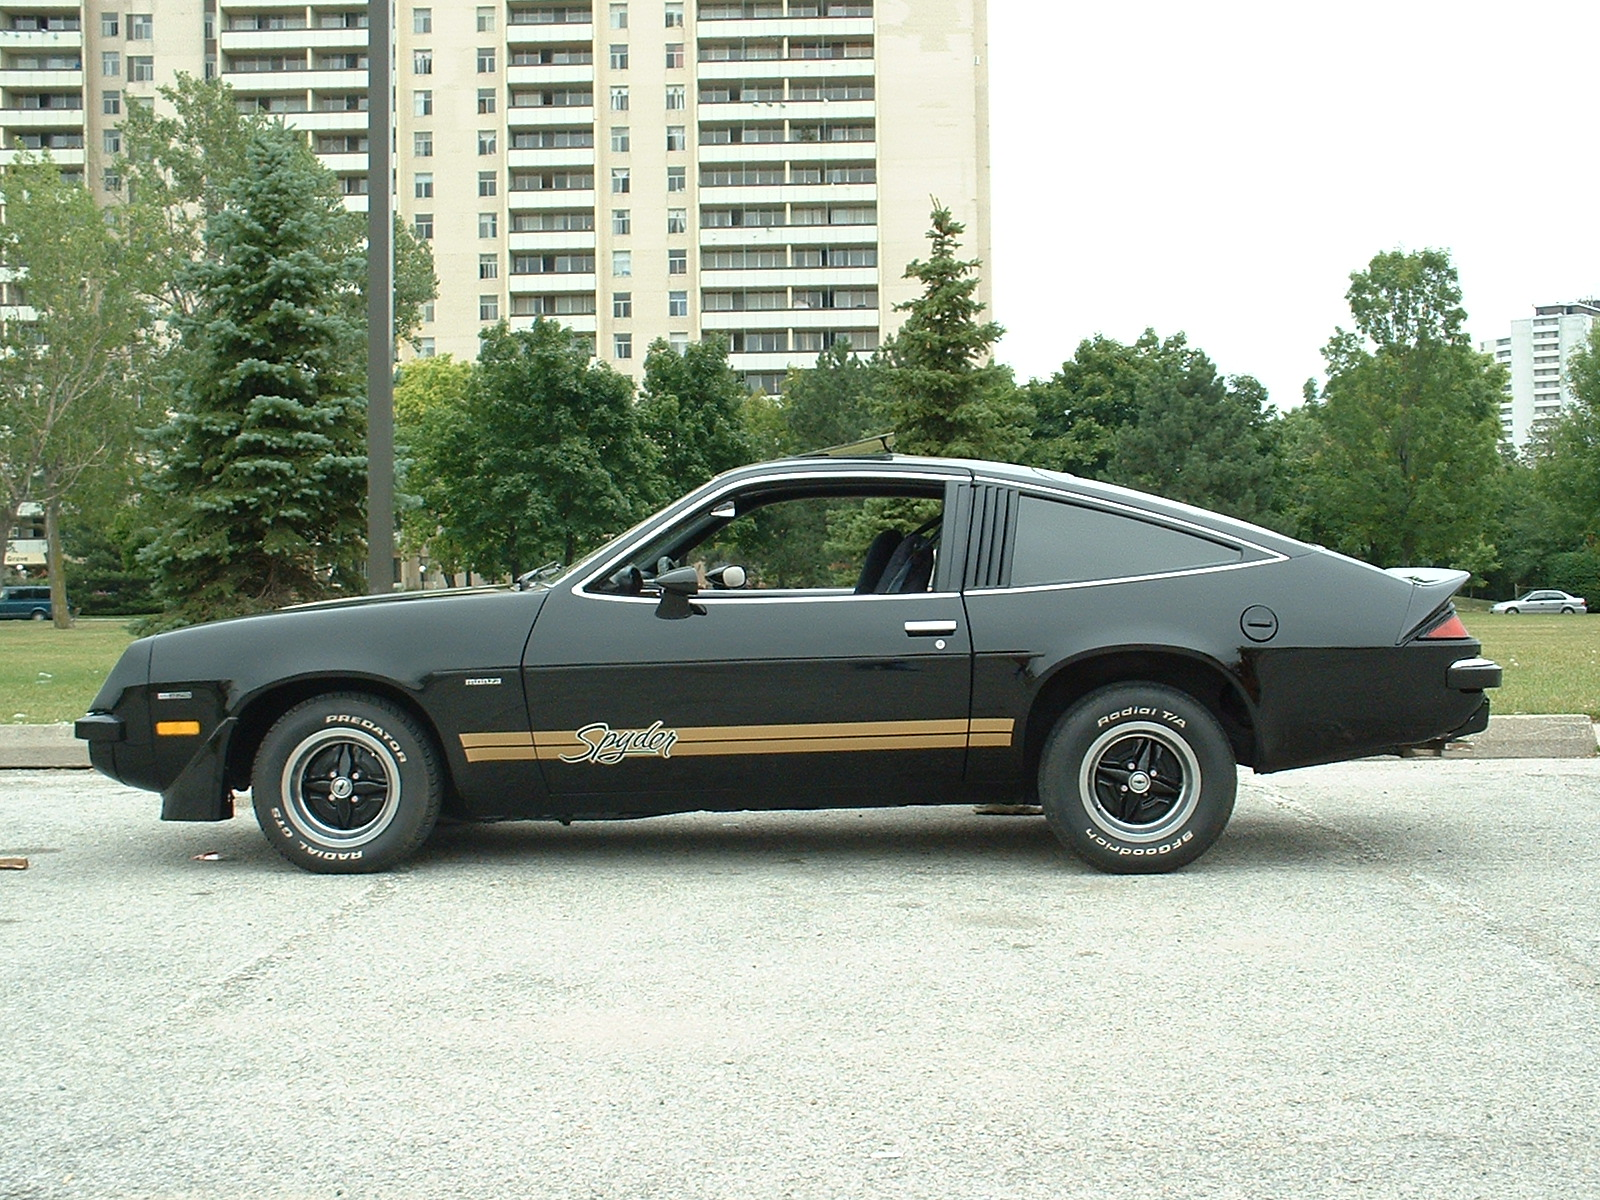 Chevy Monza profile was inspired by an early 1970s Ferrari. McCready's car has the Spyder package.